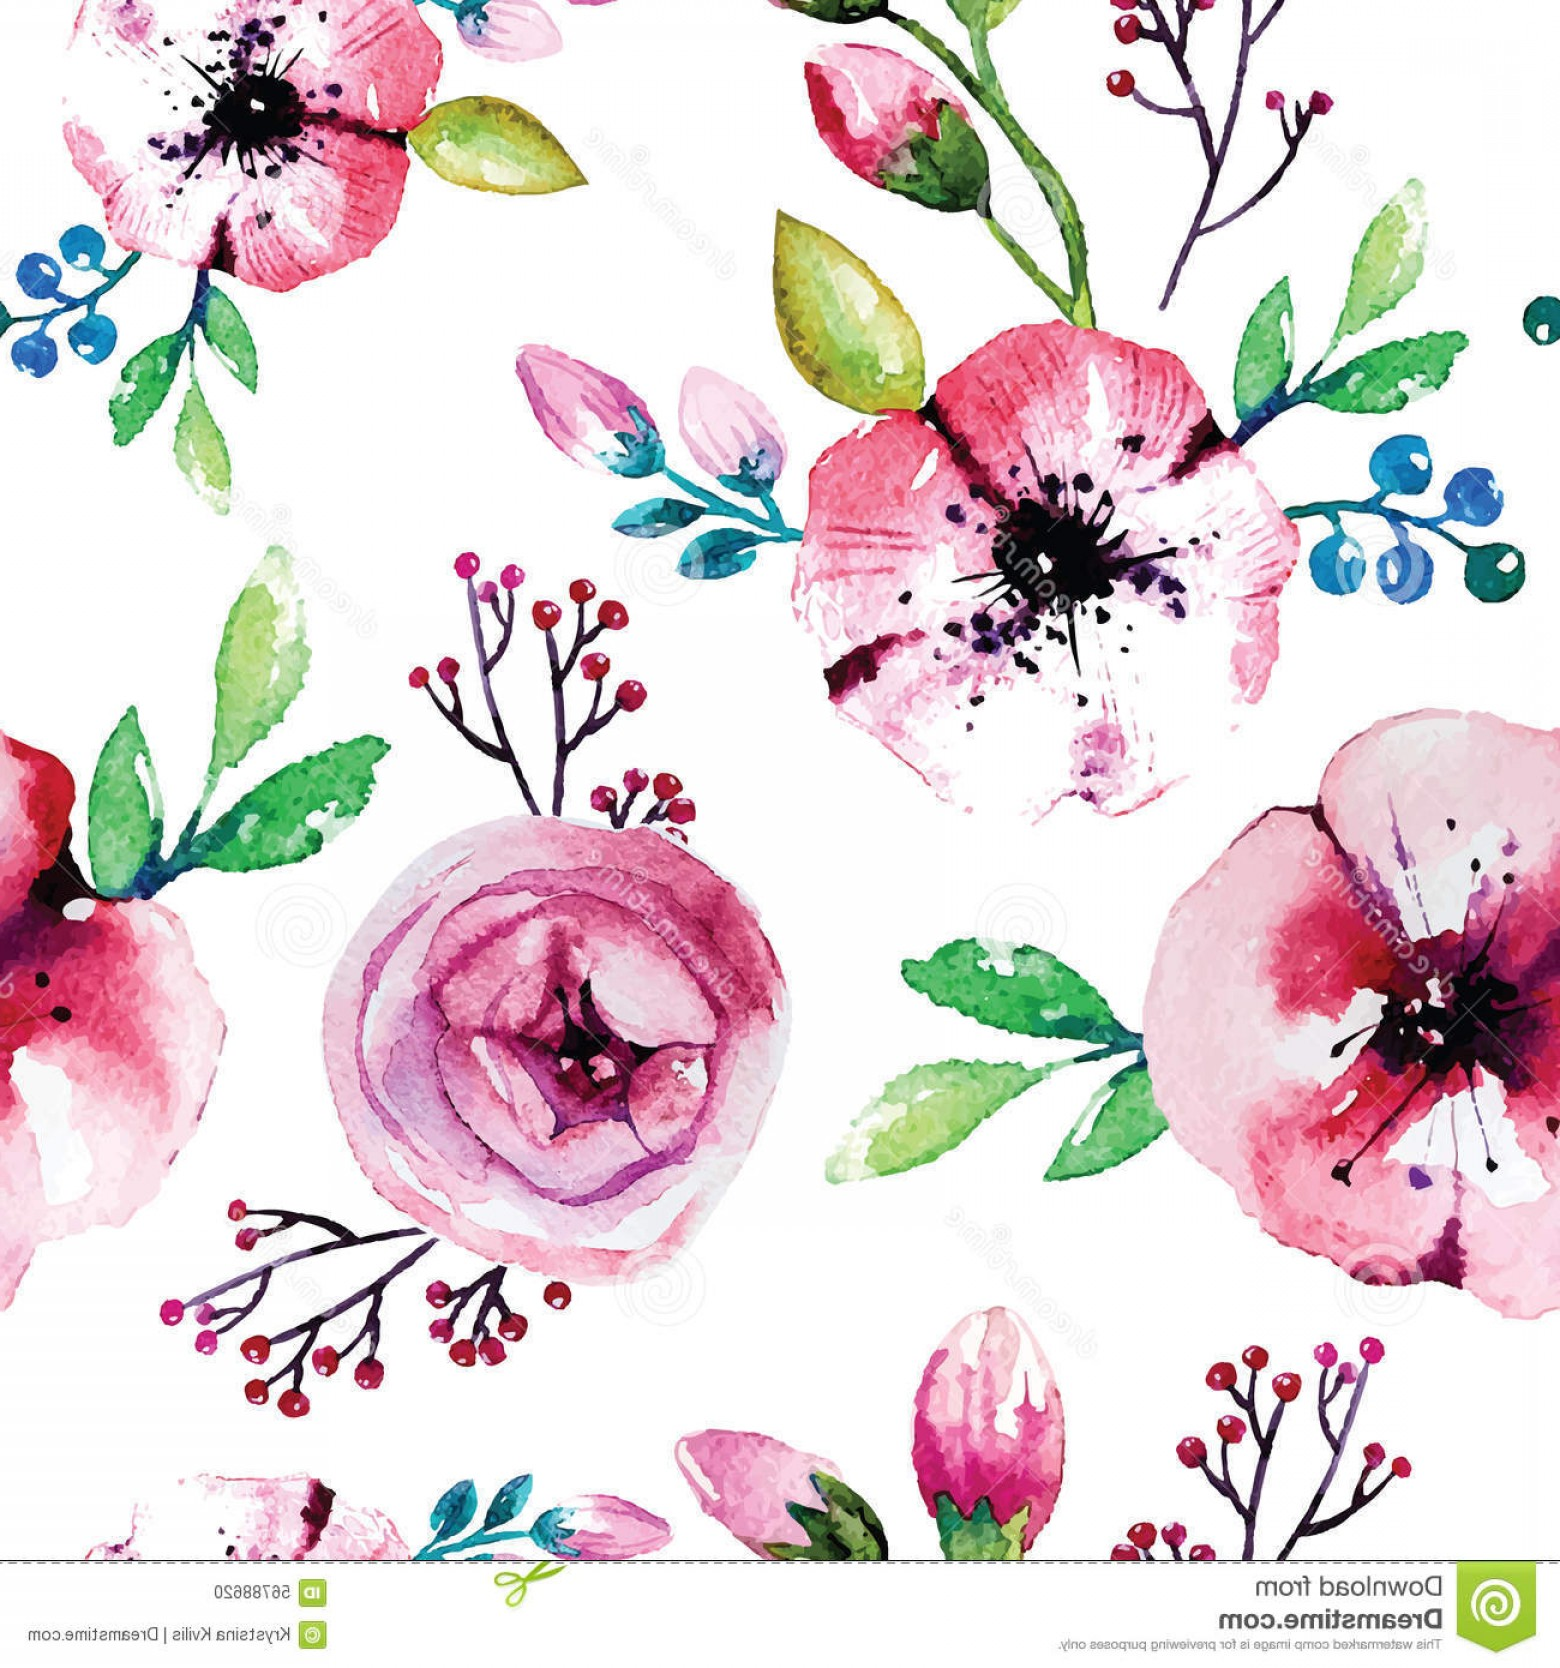 Watercolor Floral Background Vector: Stock Illustration Watercolor Painting Rose Flowers Seamless Floral Pattern Roses Light Background Vector Illustration Image